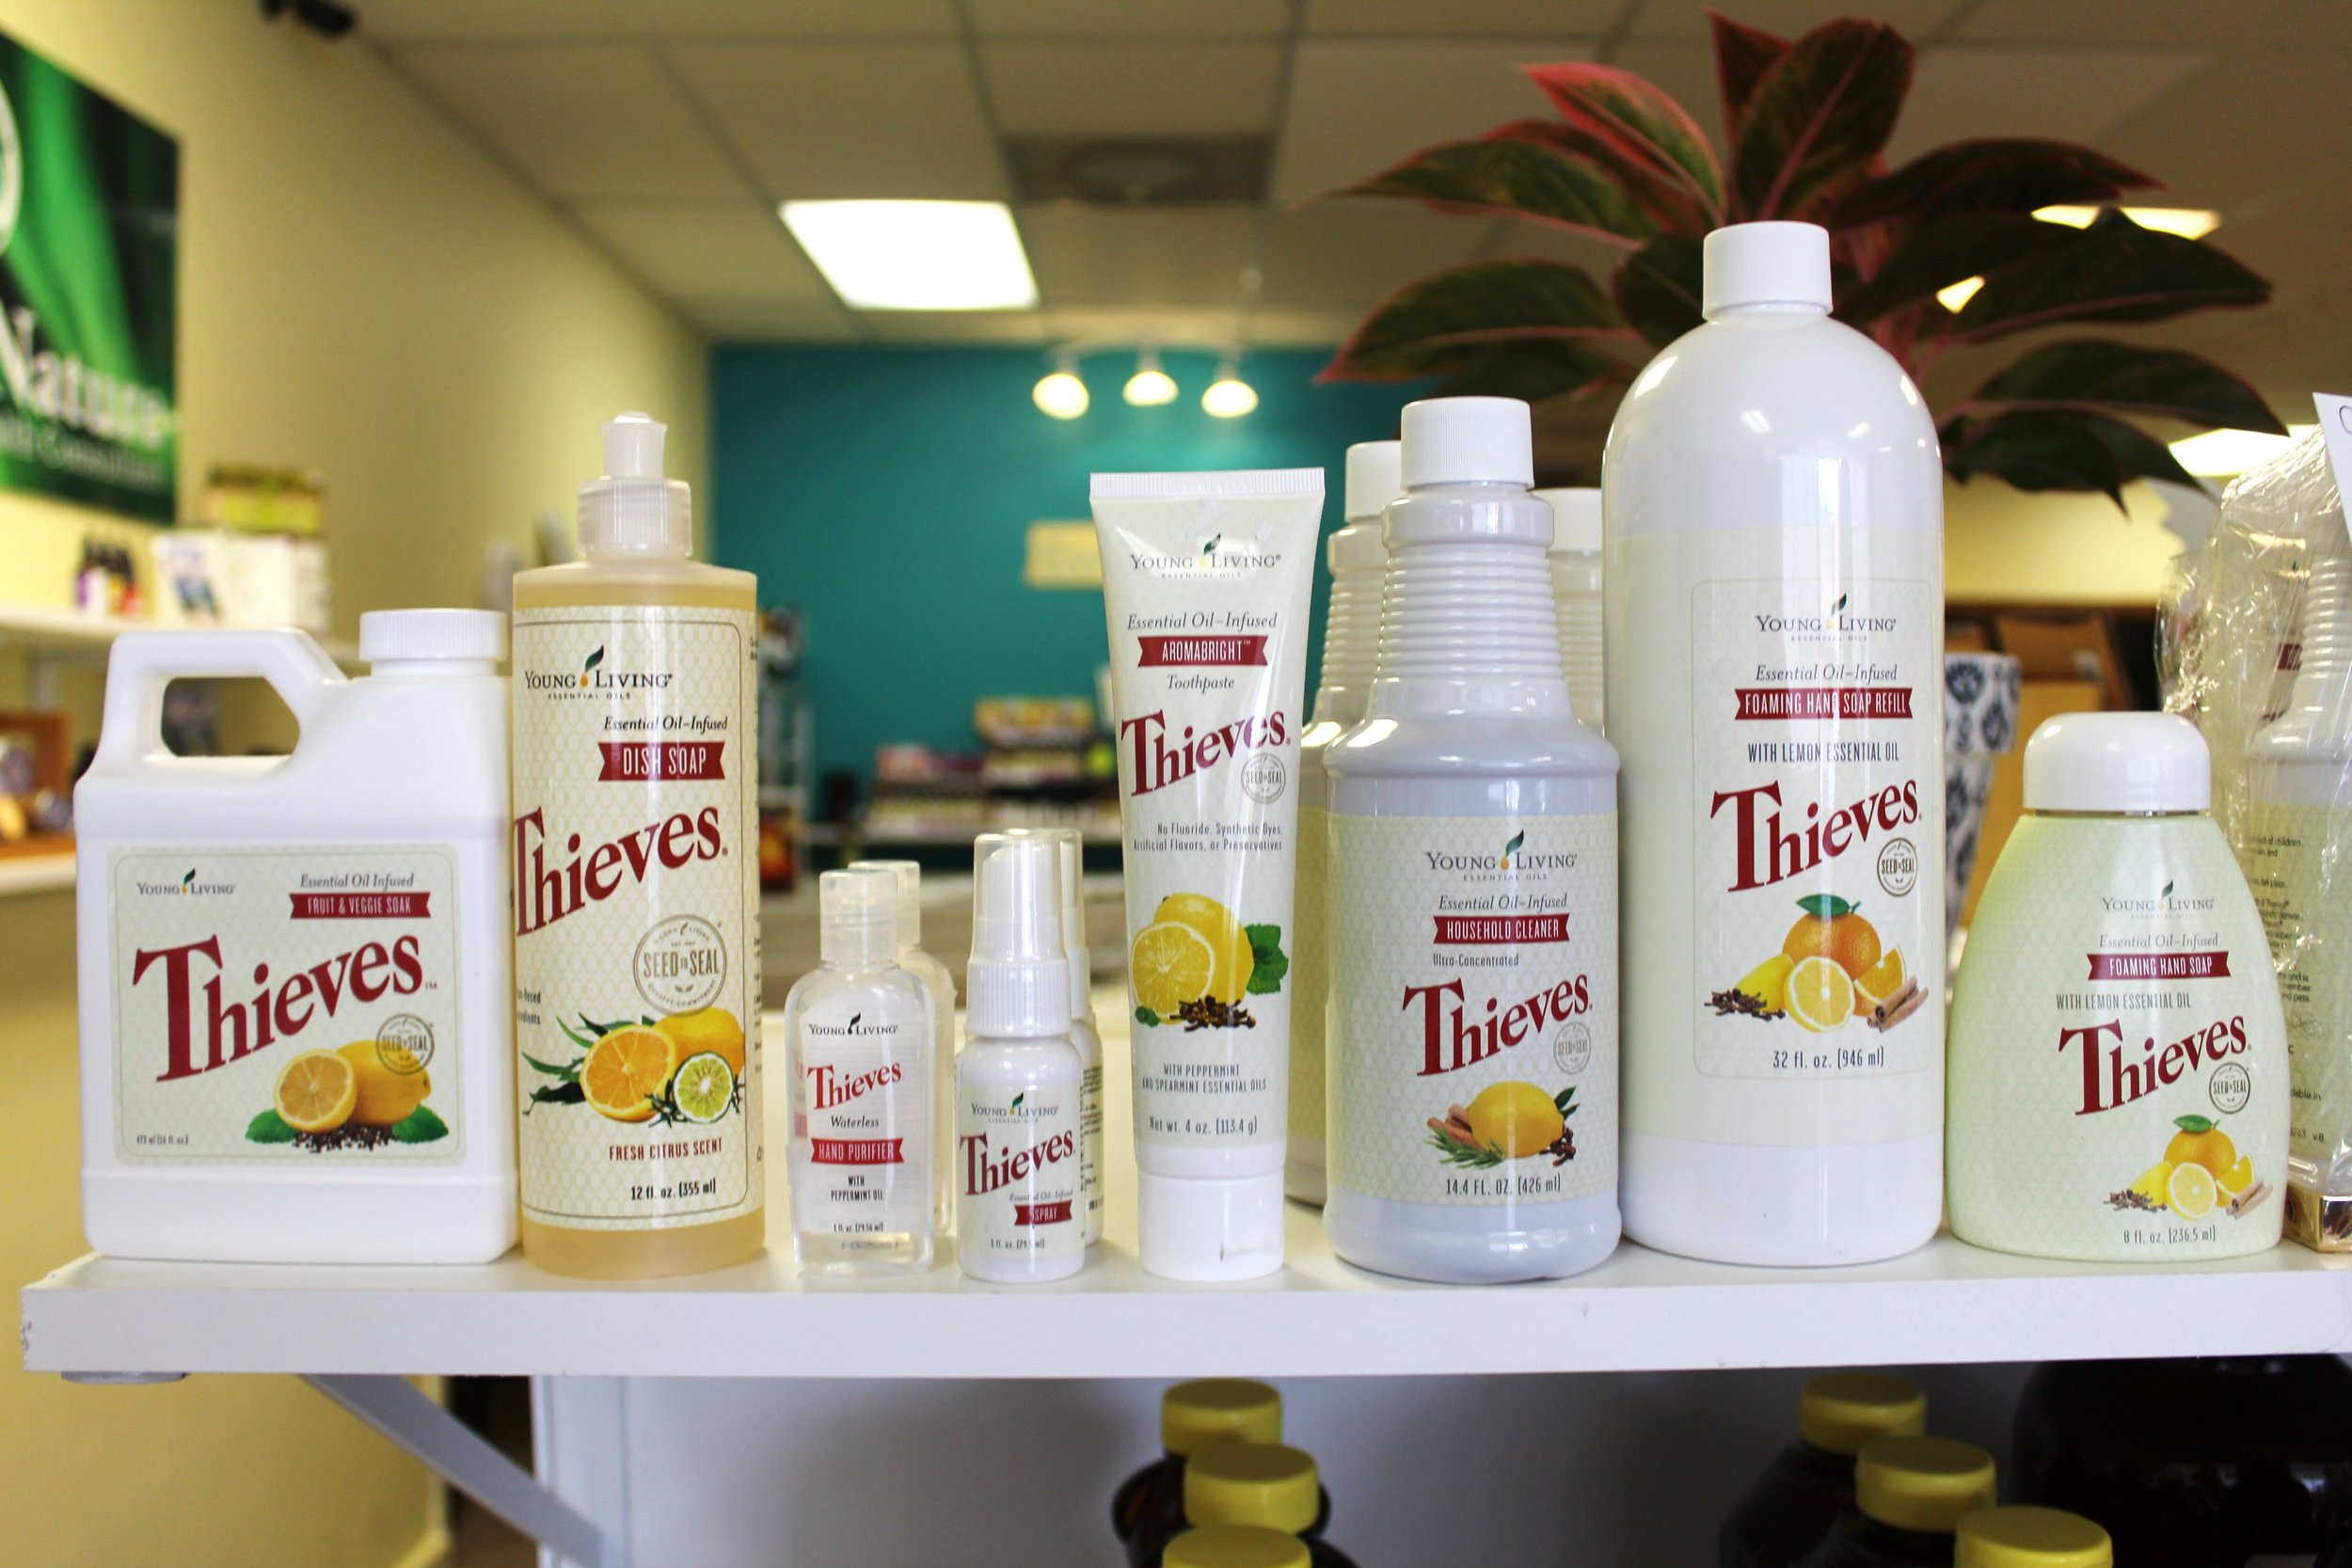 We carry a whole line of Thieves cleaning products.